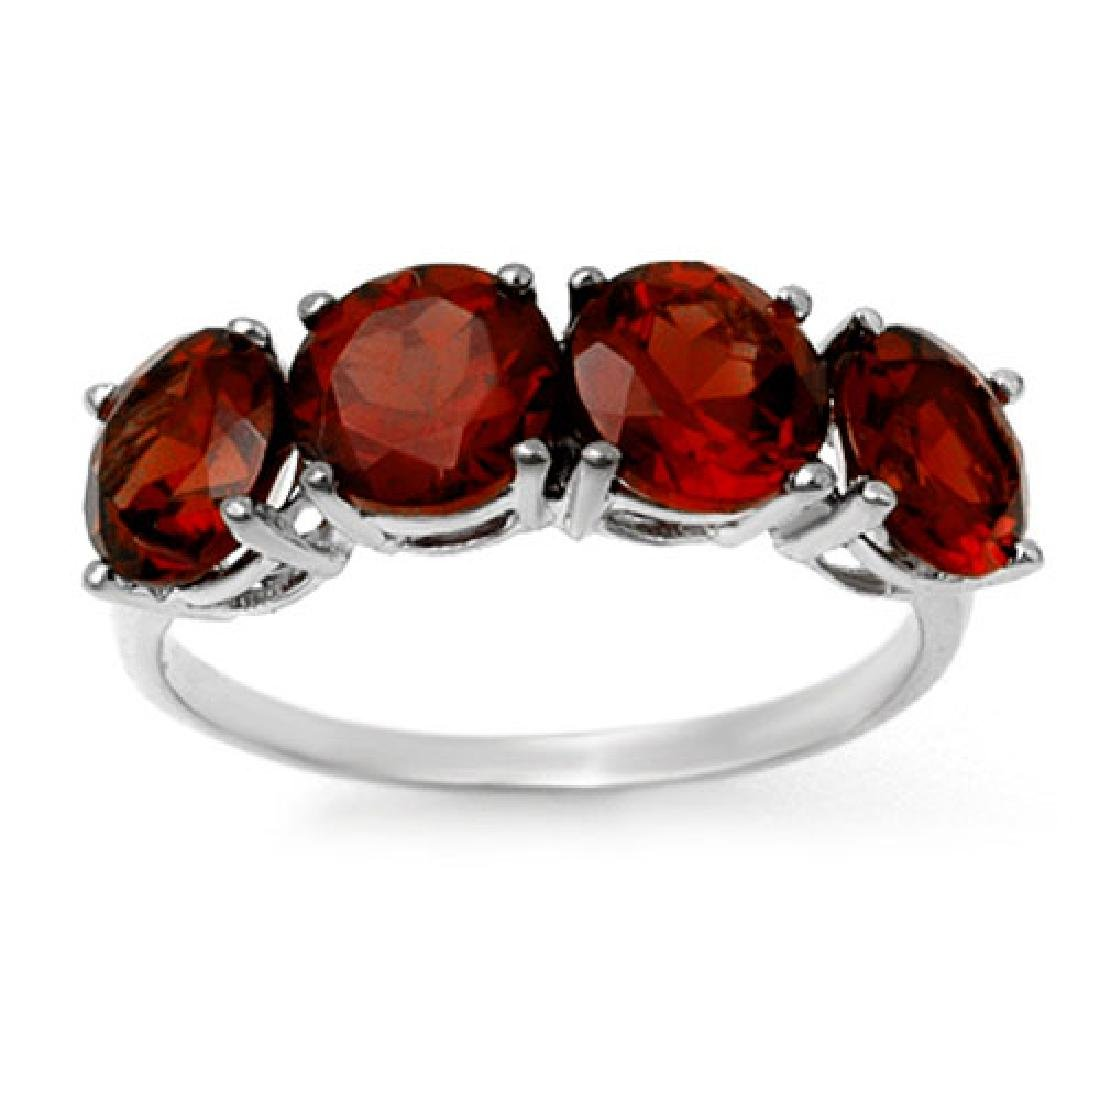 3.66 CTW Garnet Ring 10K White Gold